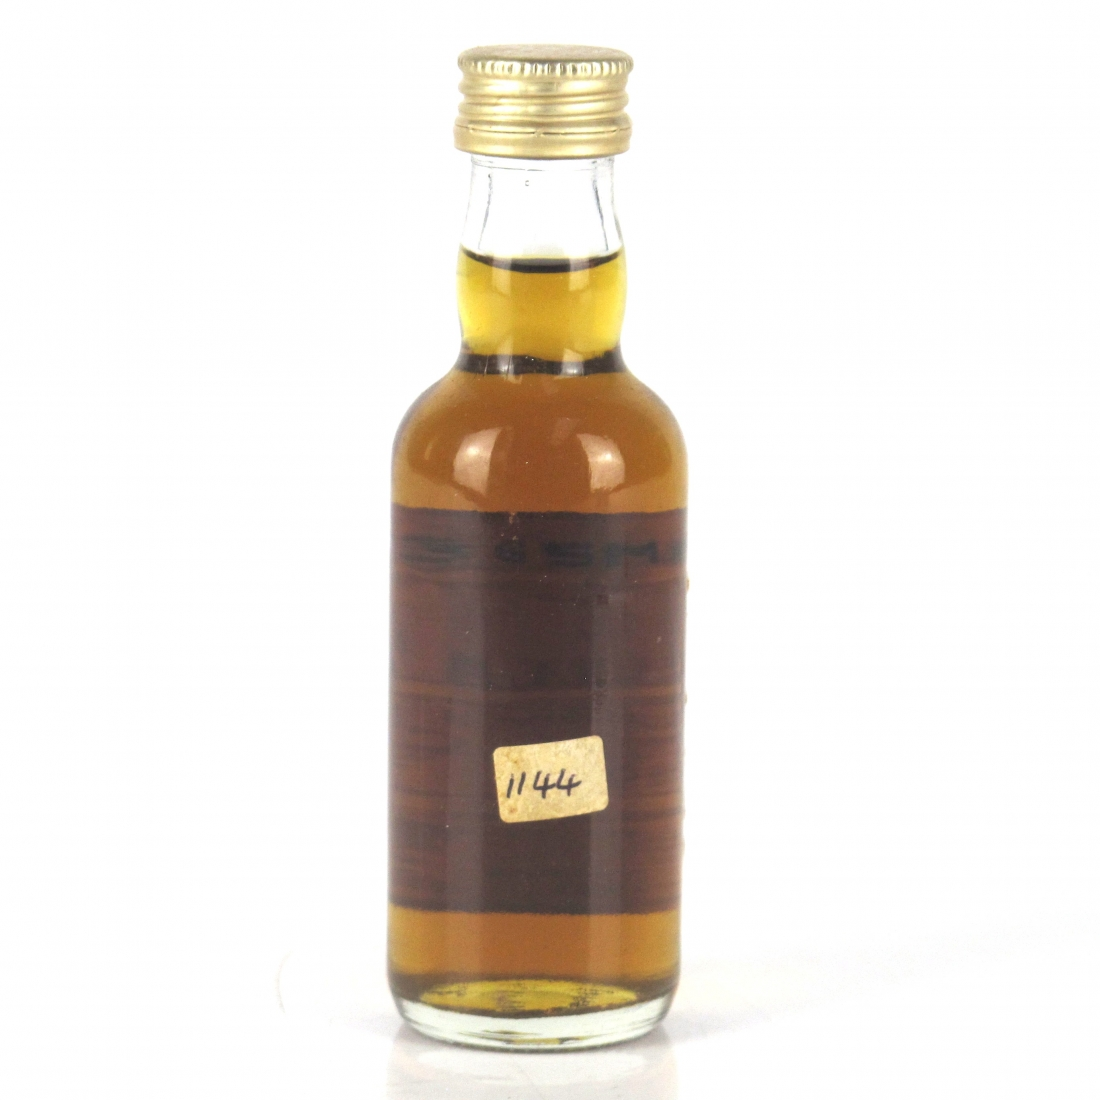 Macallan 18 Year Old 1975 Miniature 5cl